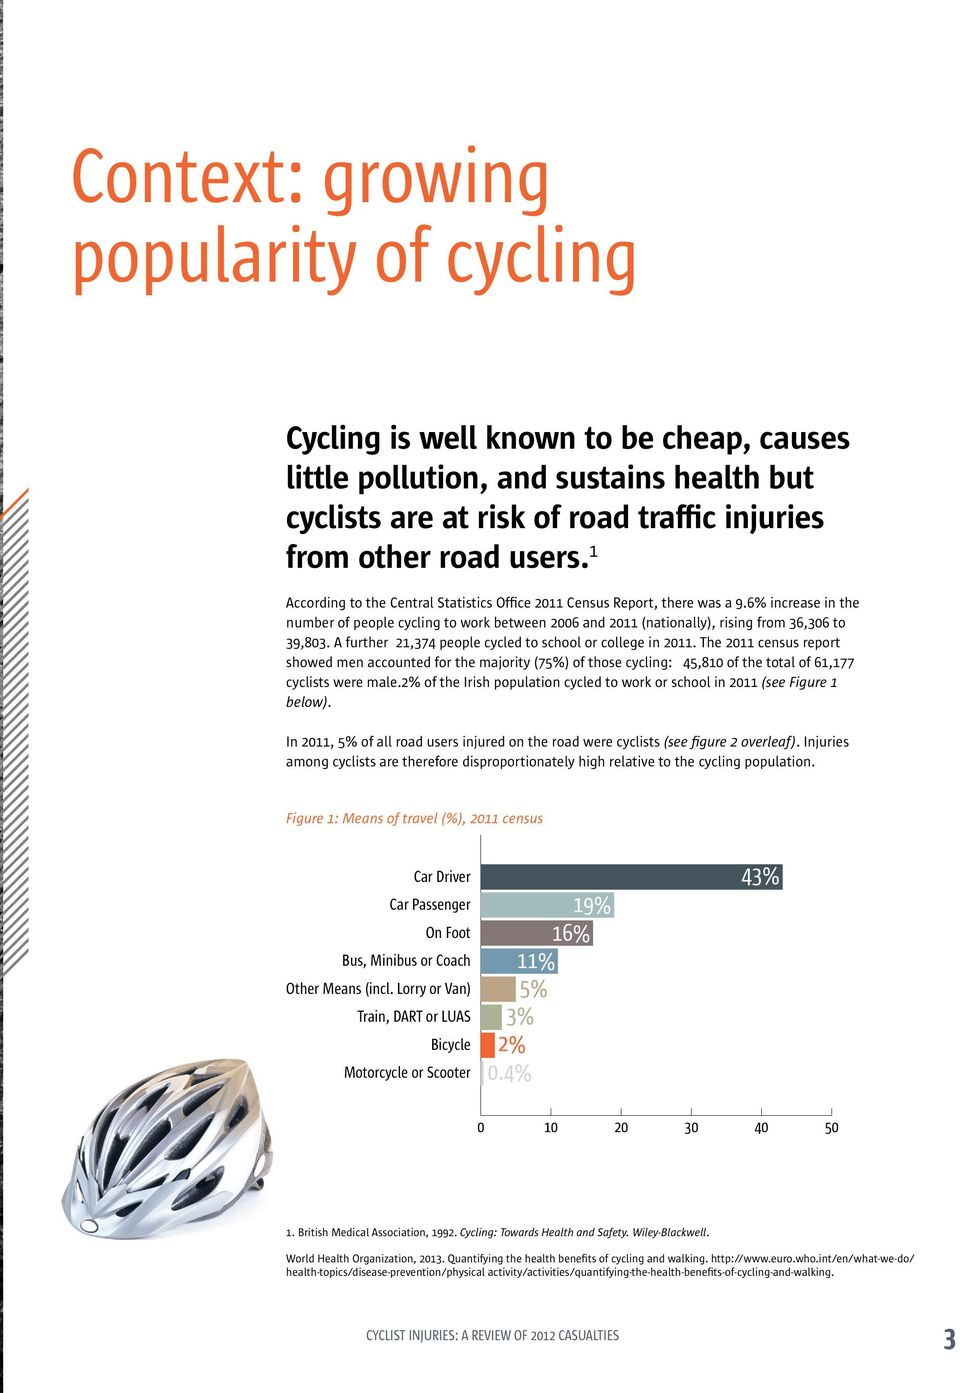 A further 21,374 people cycled to school or college in 2011. The 2011 census report showed men accounted for the majority (75%) of those cycling: 45,810 of the total of 61,177 cyclists were male.